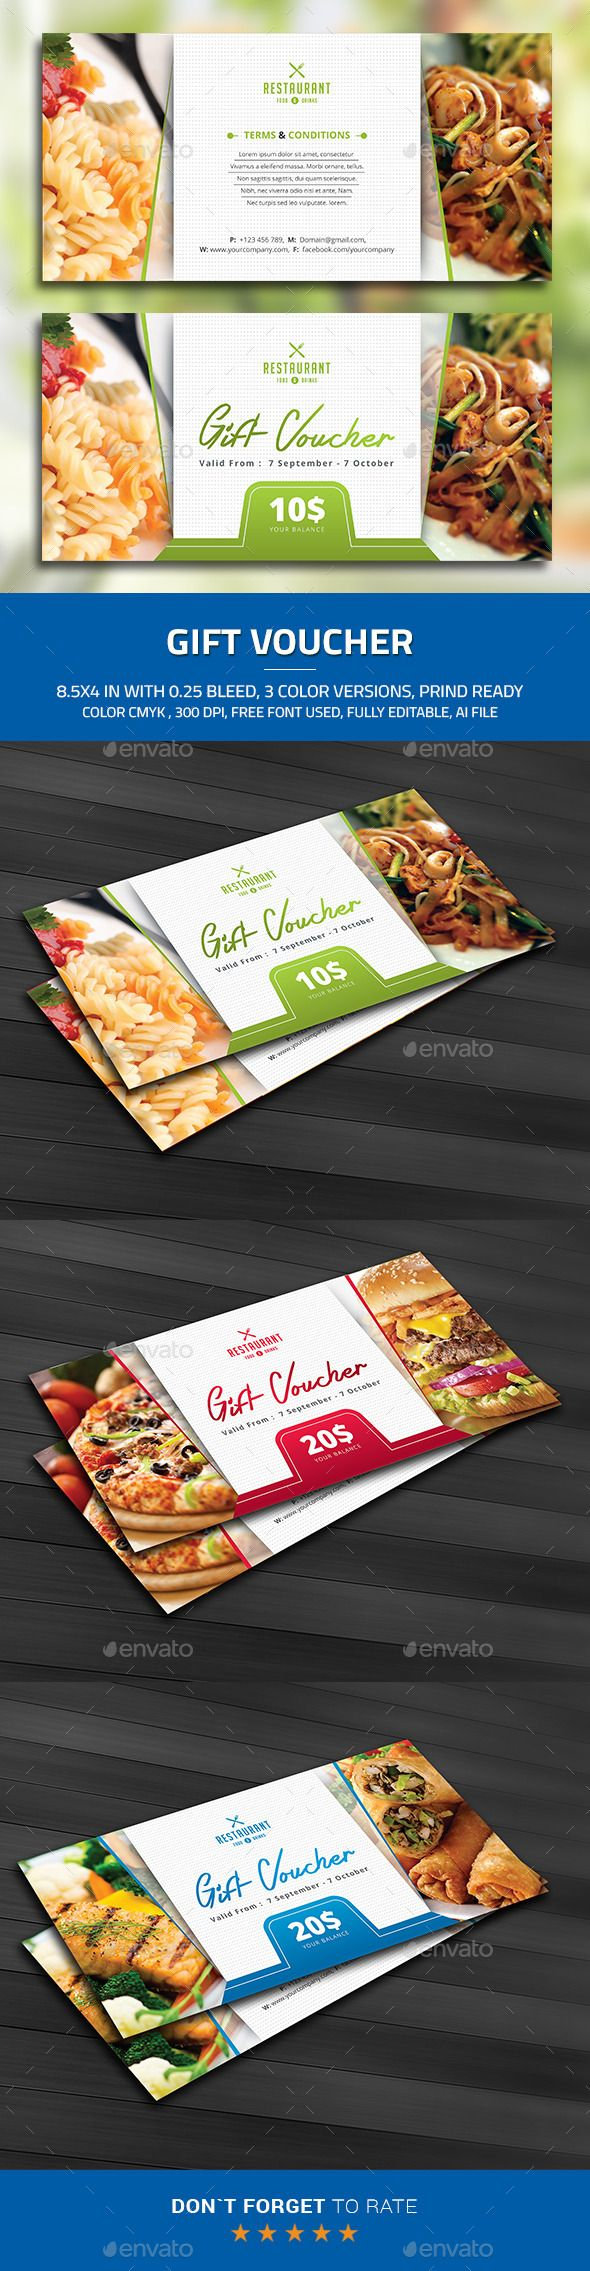 Gift Voucher Template #design Buy and Download: http://graphicriver.net/item/gift-voucher/12836575?ref=ksioks